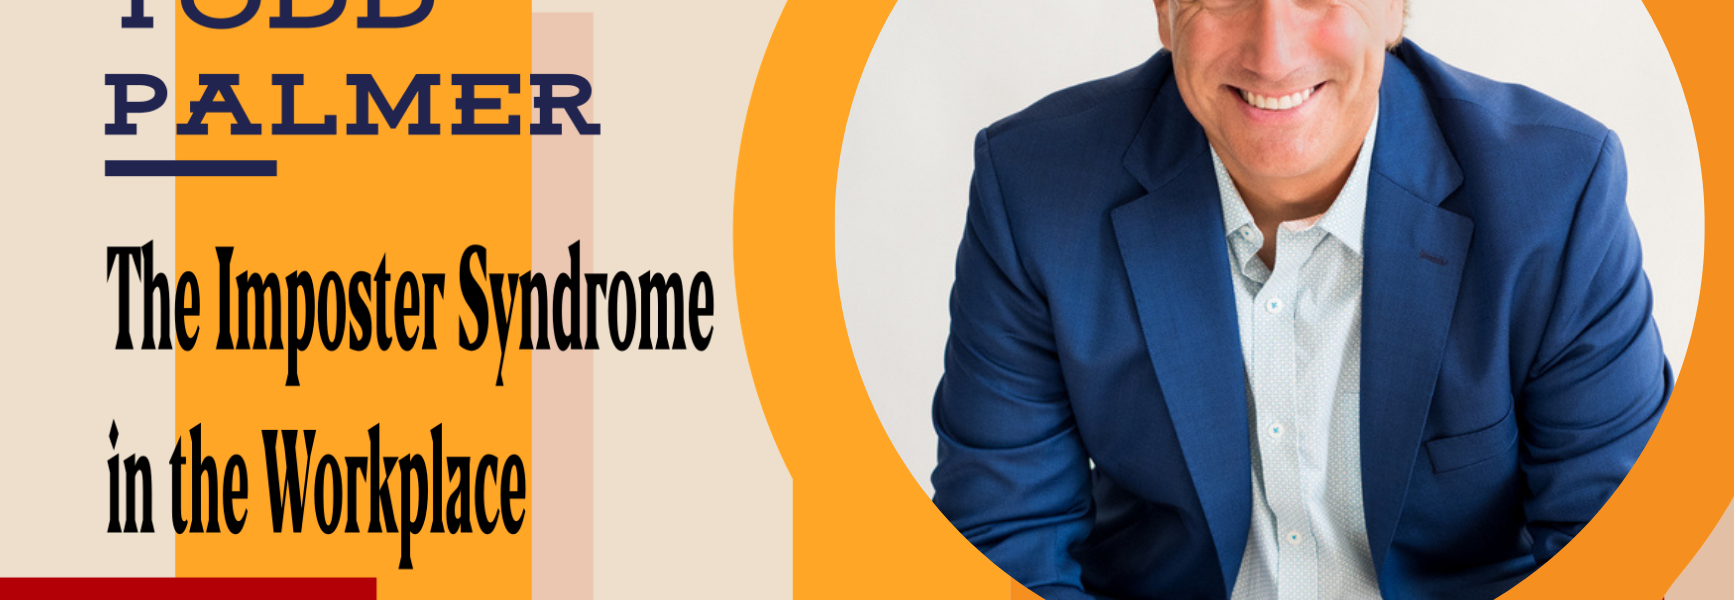 The Imposter Syndrome in the Workplace with Todd Palmer